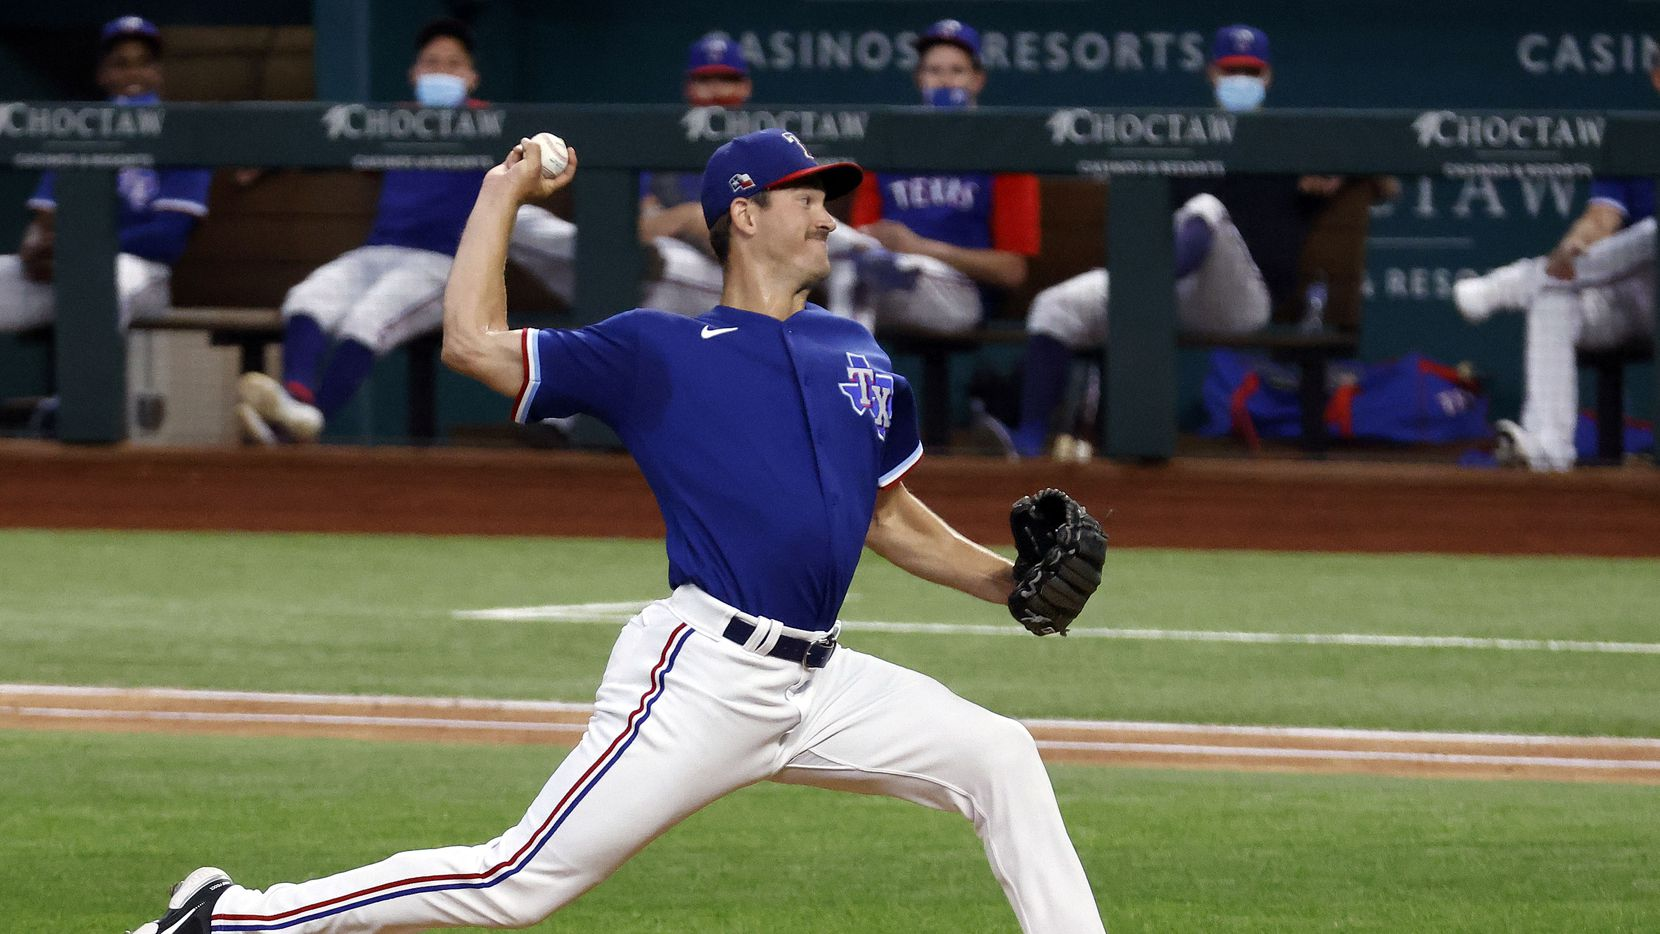 Texas Rangers starting minor league pitcher Drew Anderson throws against the Kansas City Royals in an alternate-site game for minor leaguers at Globe Life Field in Arlington, Friday, April 23, 2021.